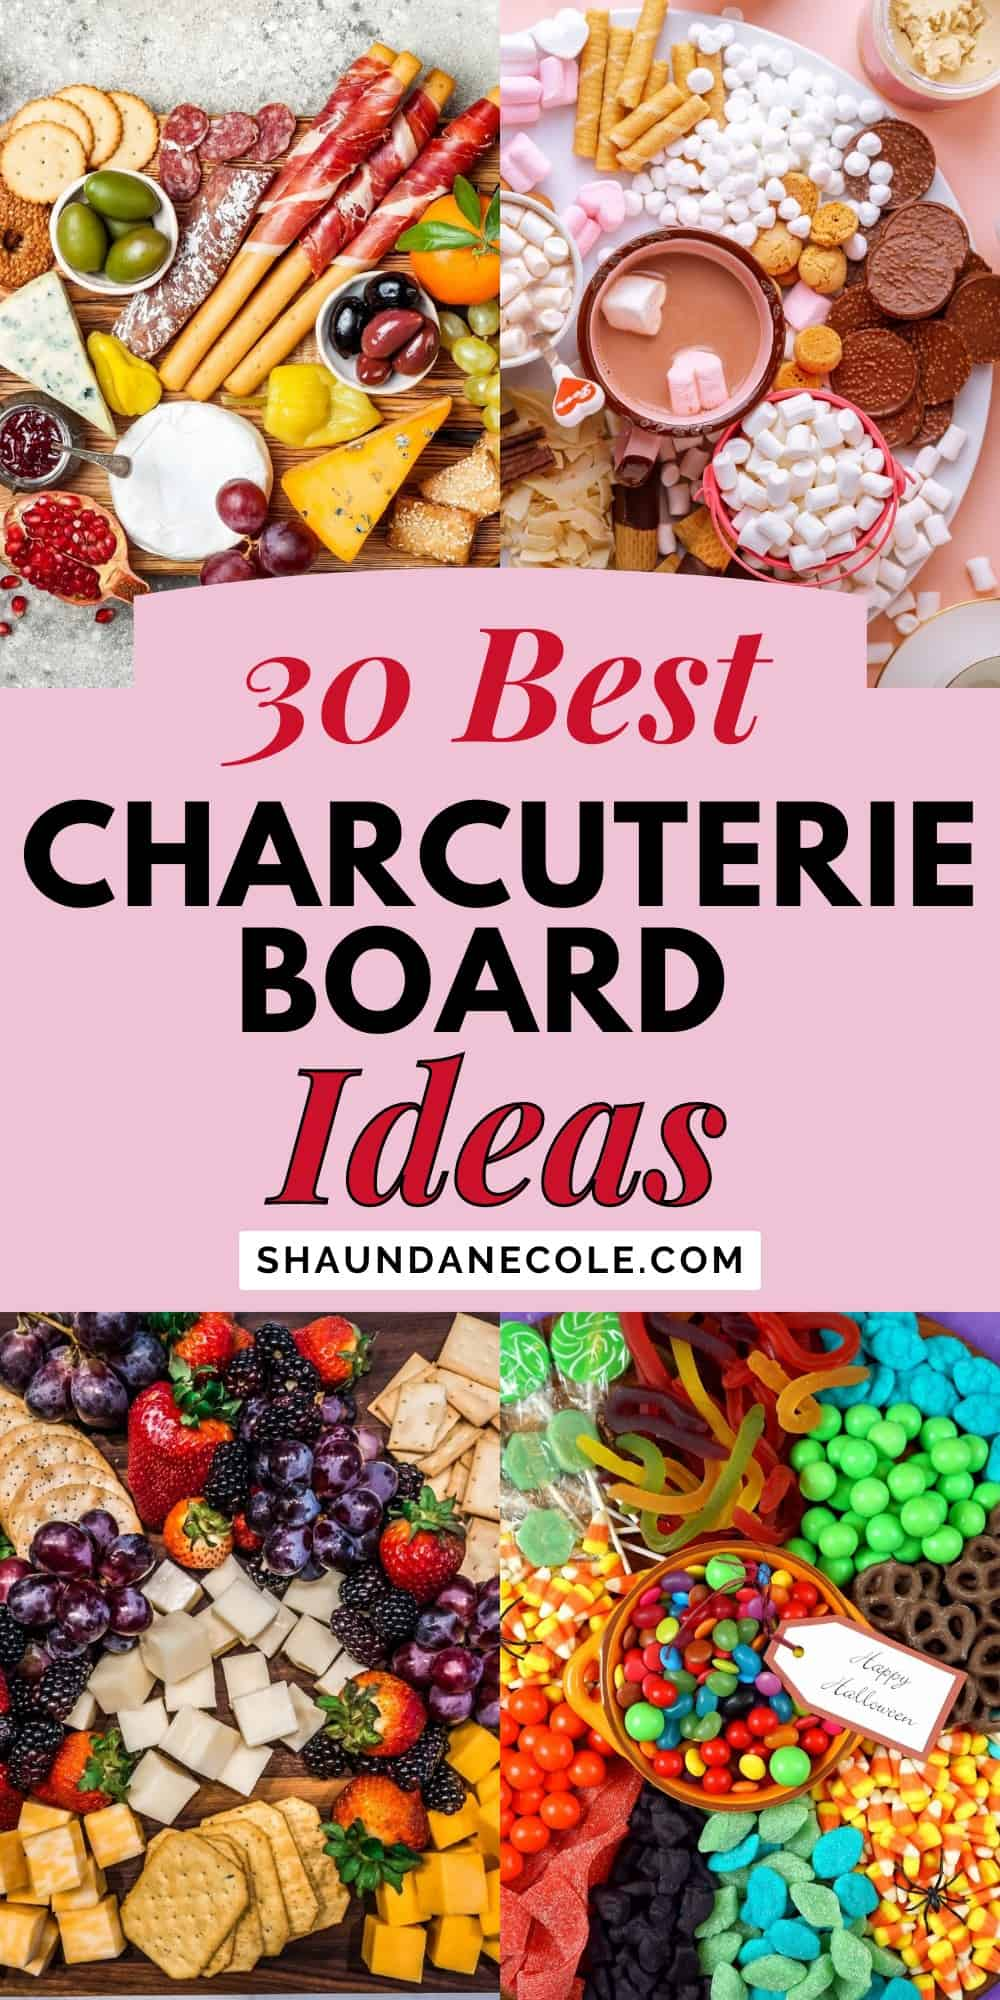 How to Make A Christmas Charcuterie Board 30 Easy Ideas + Tips How To DIY & Build The Best Pairings